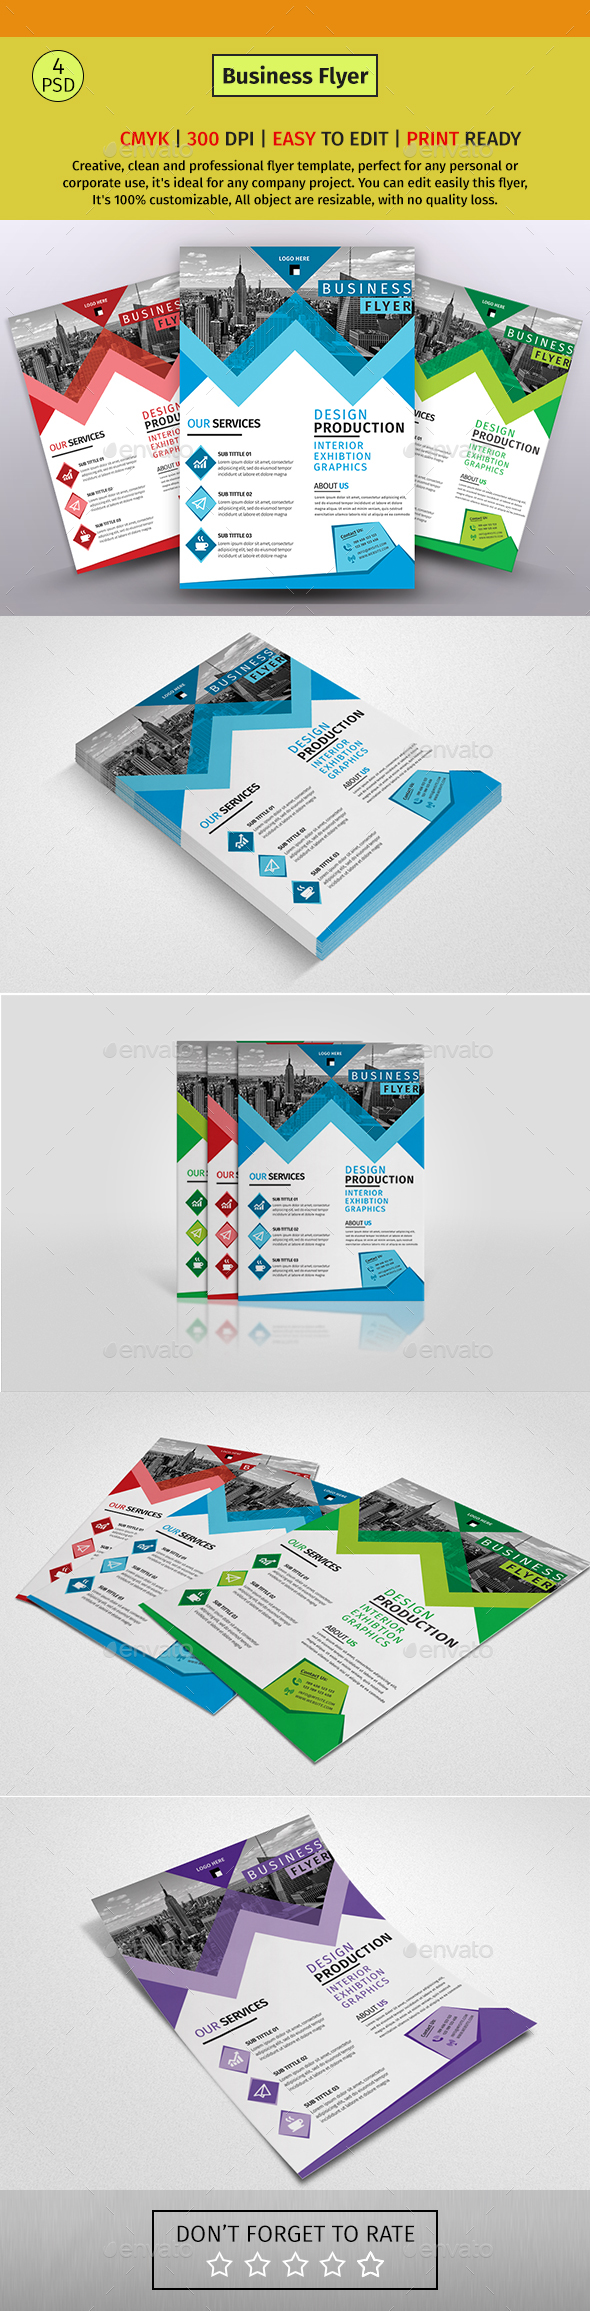 A4 Corporate Business Flyer #140 - Corporate Flyers